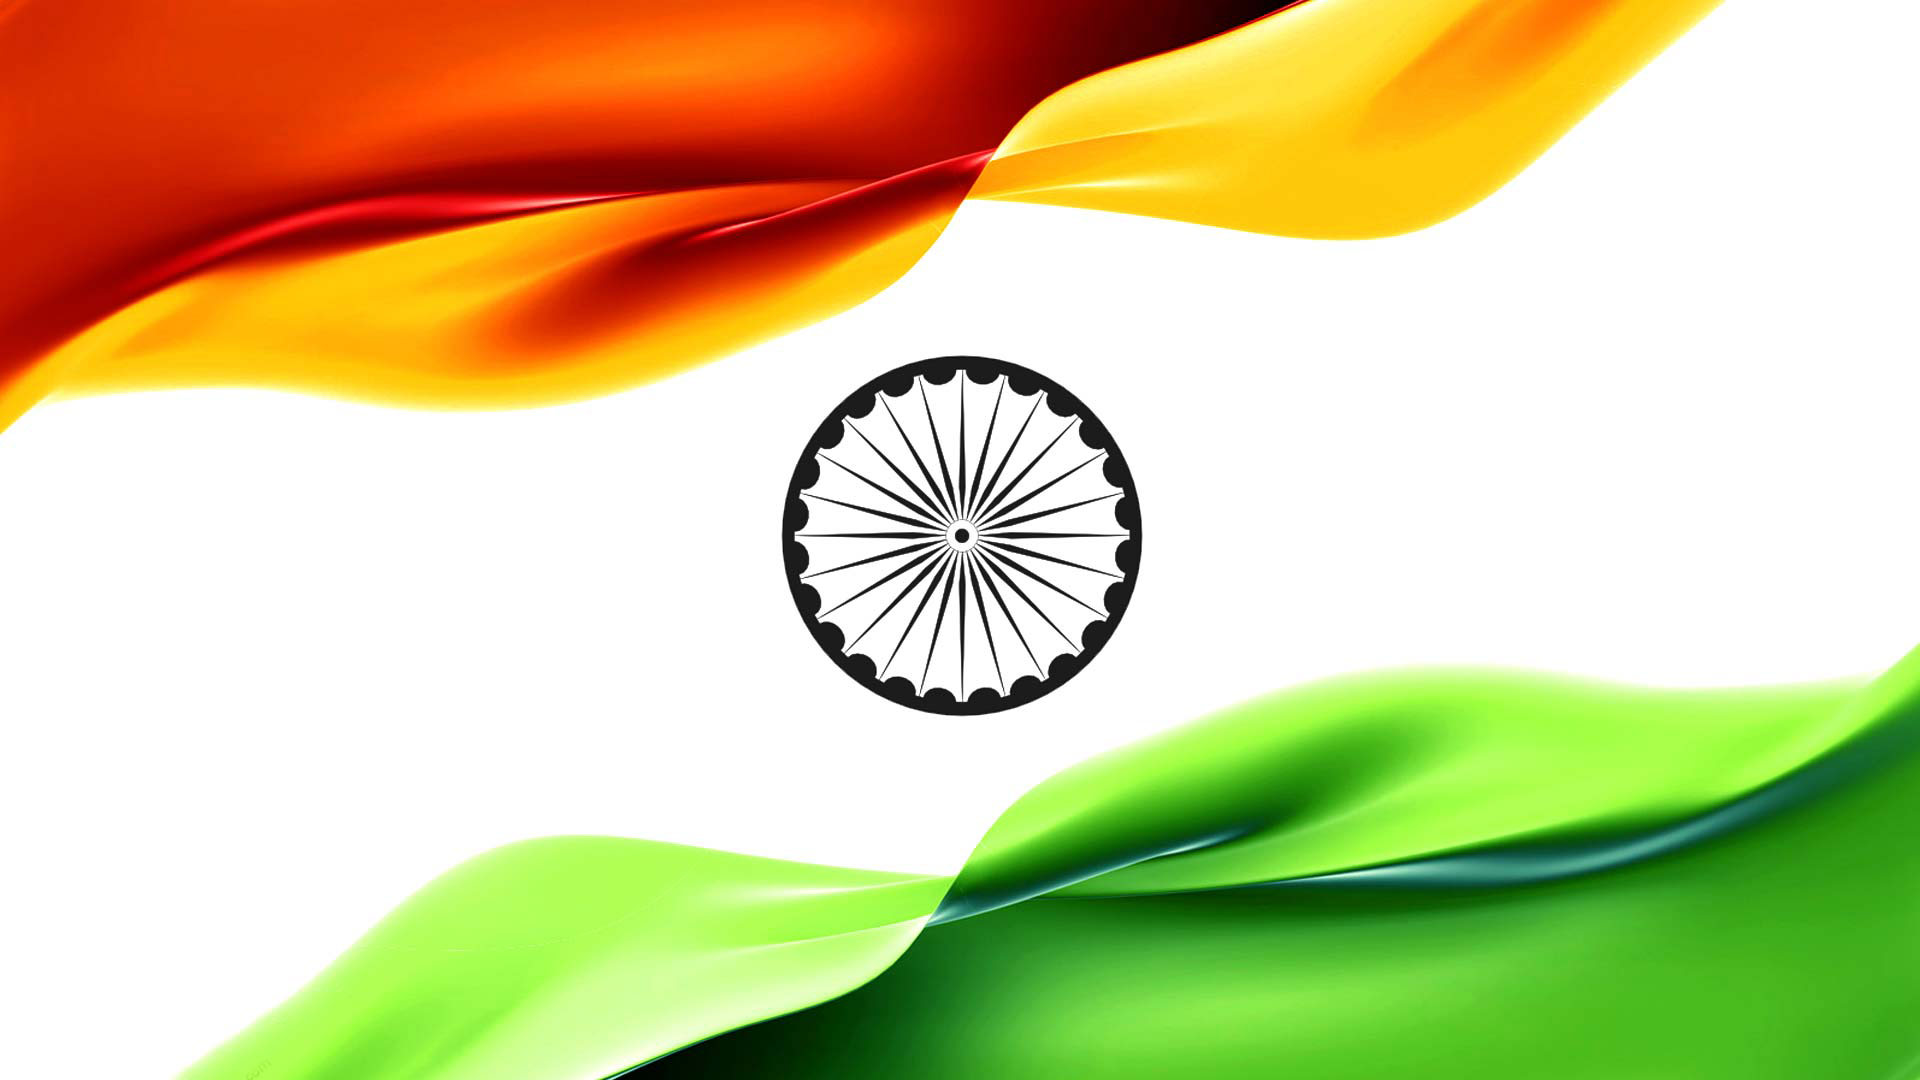 Independence_Day_HD_stevebasu-2015